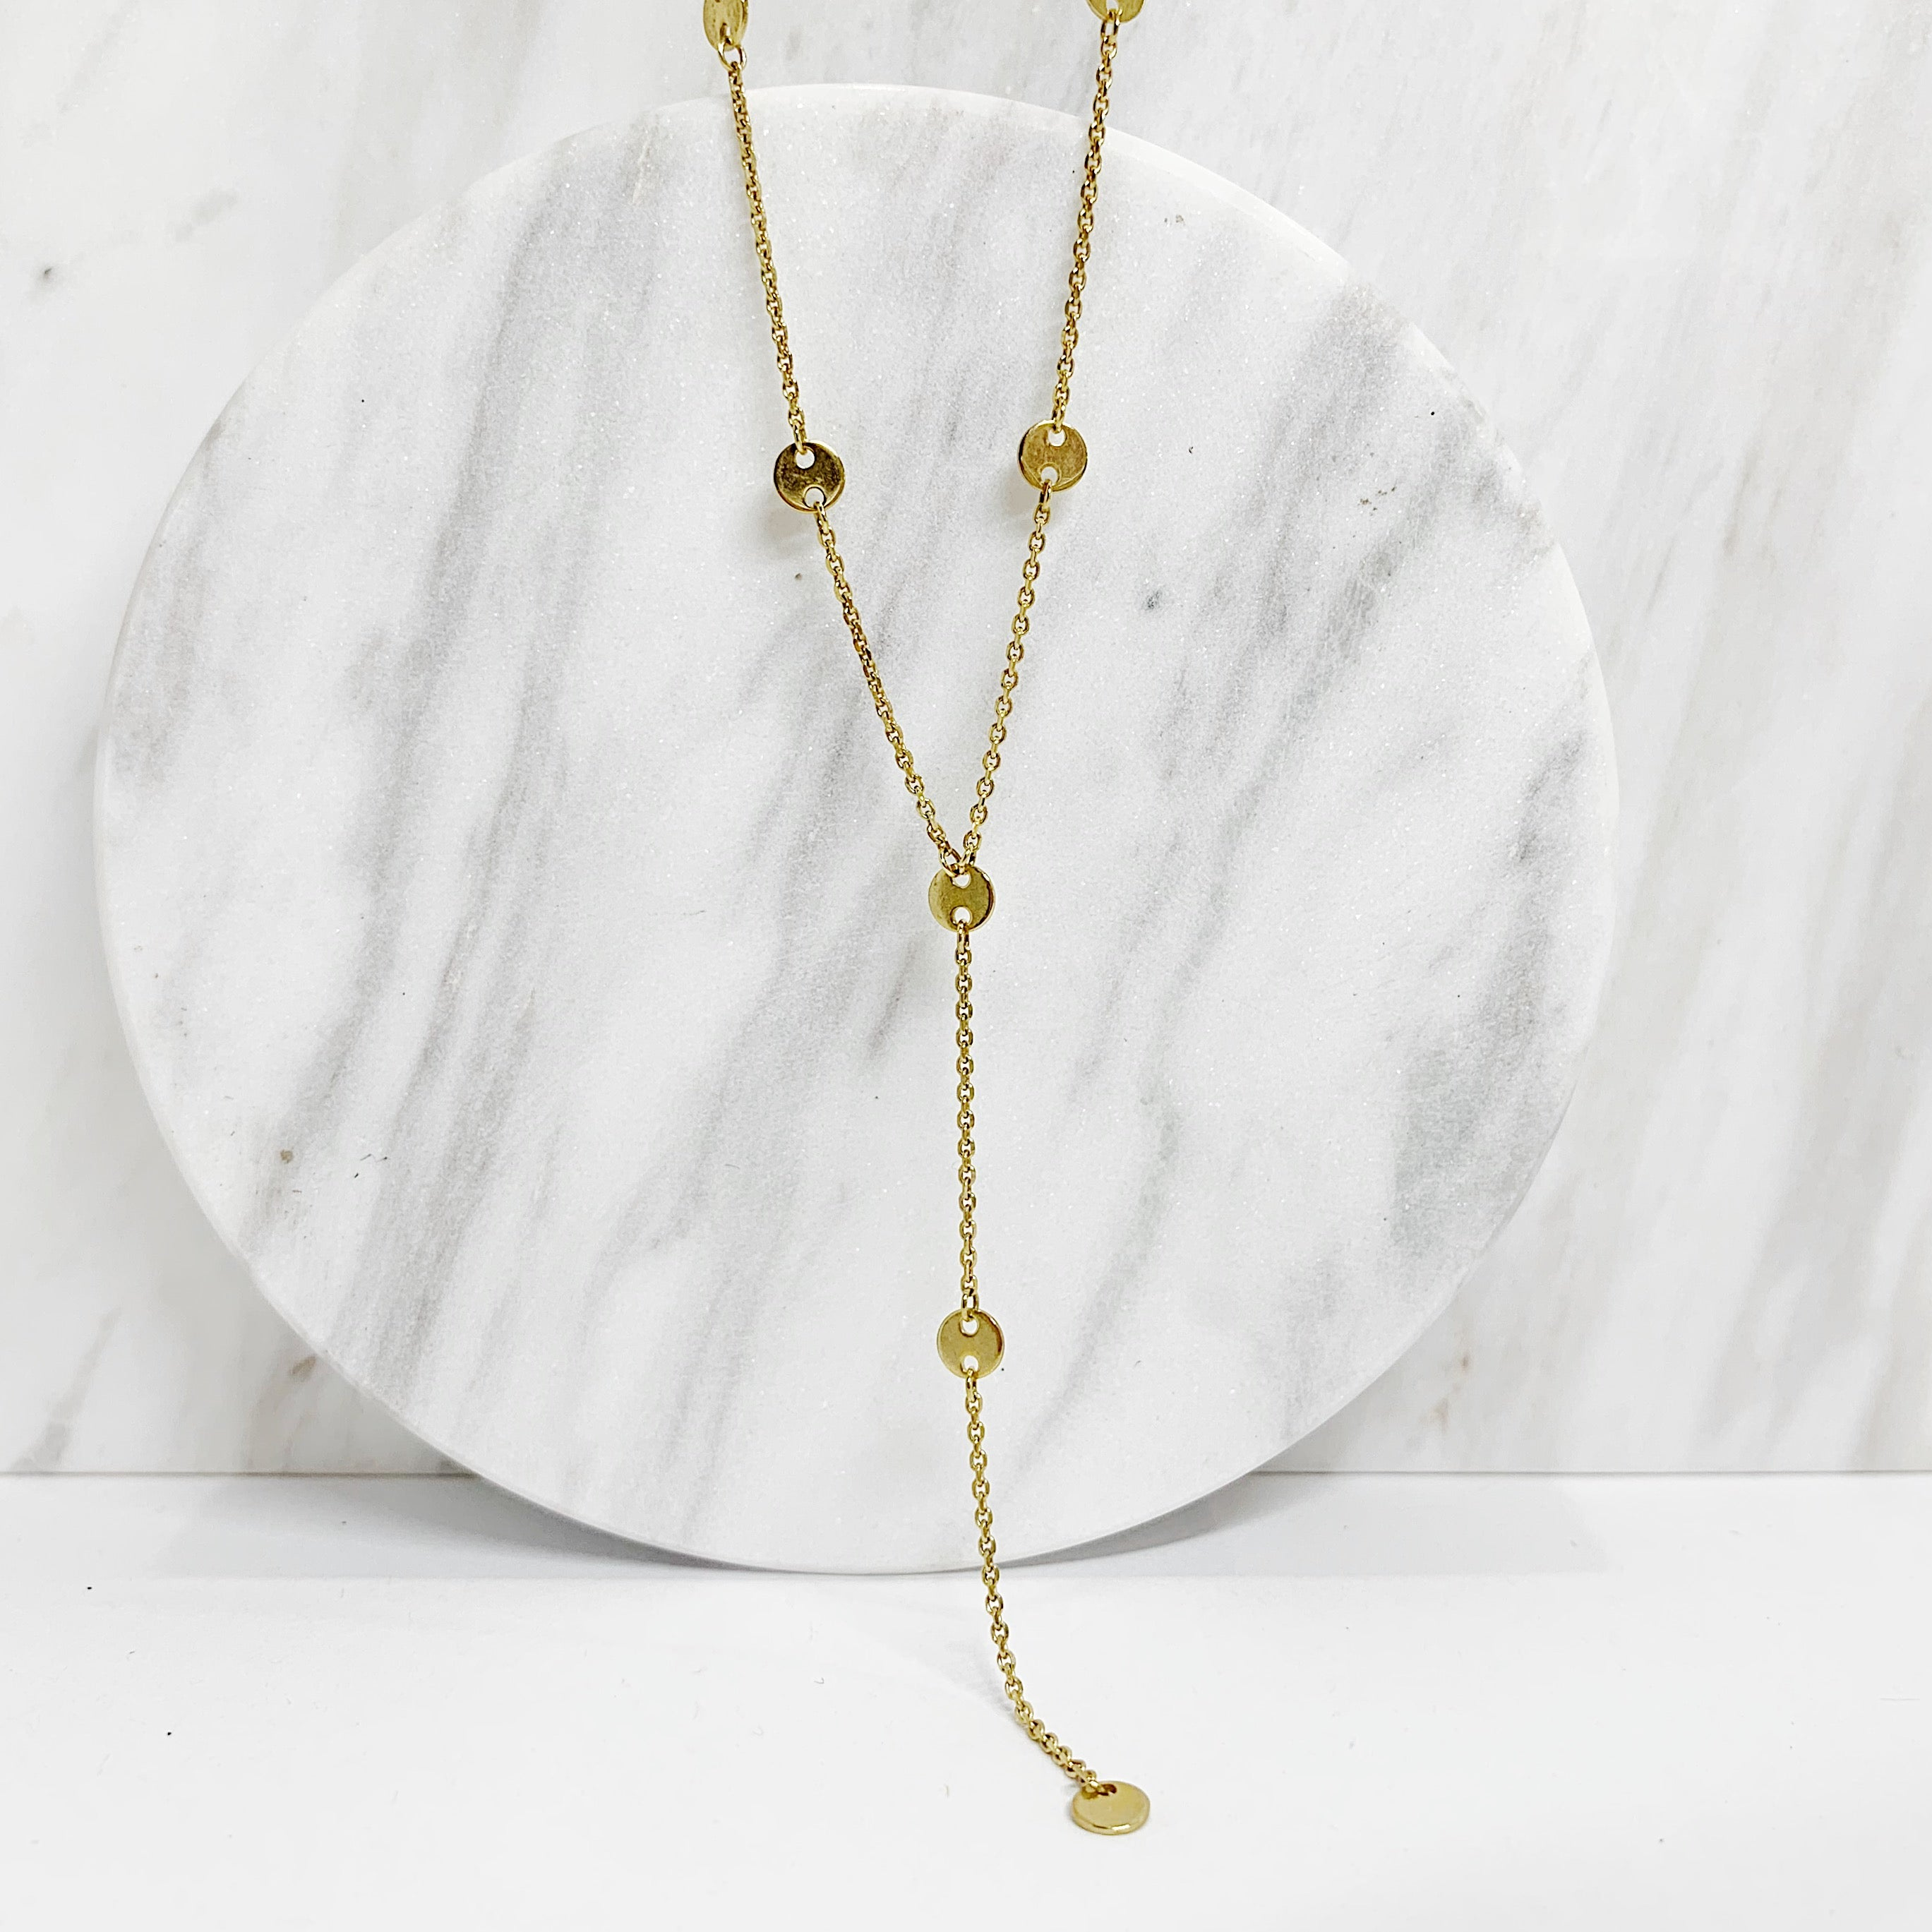 Yellow Gold Y Necklace with Discs